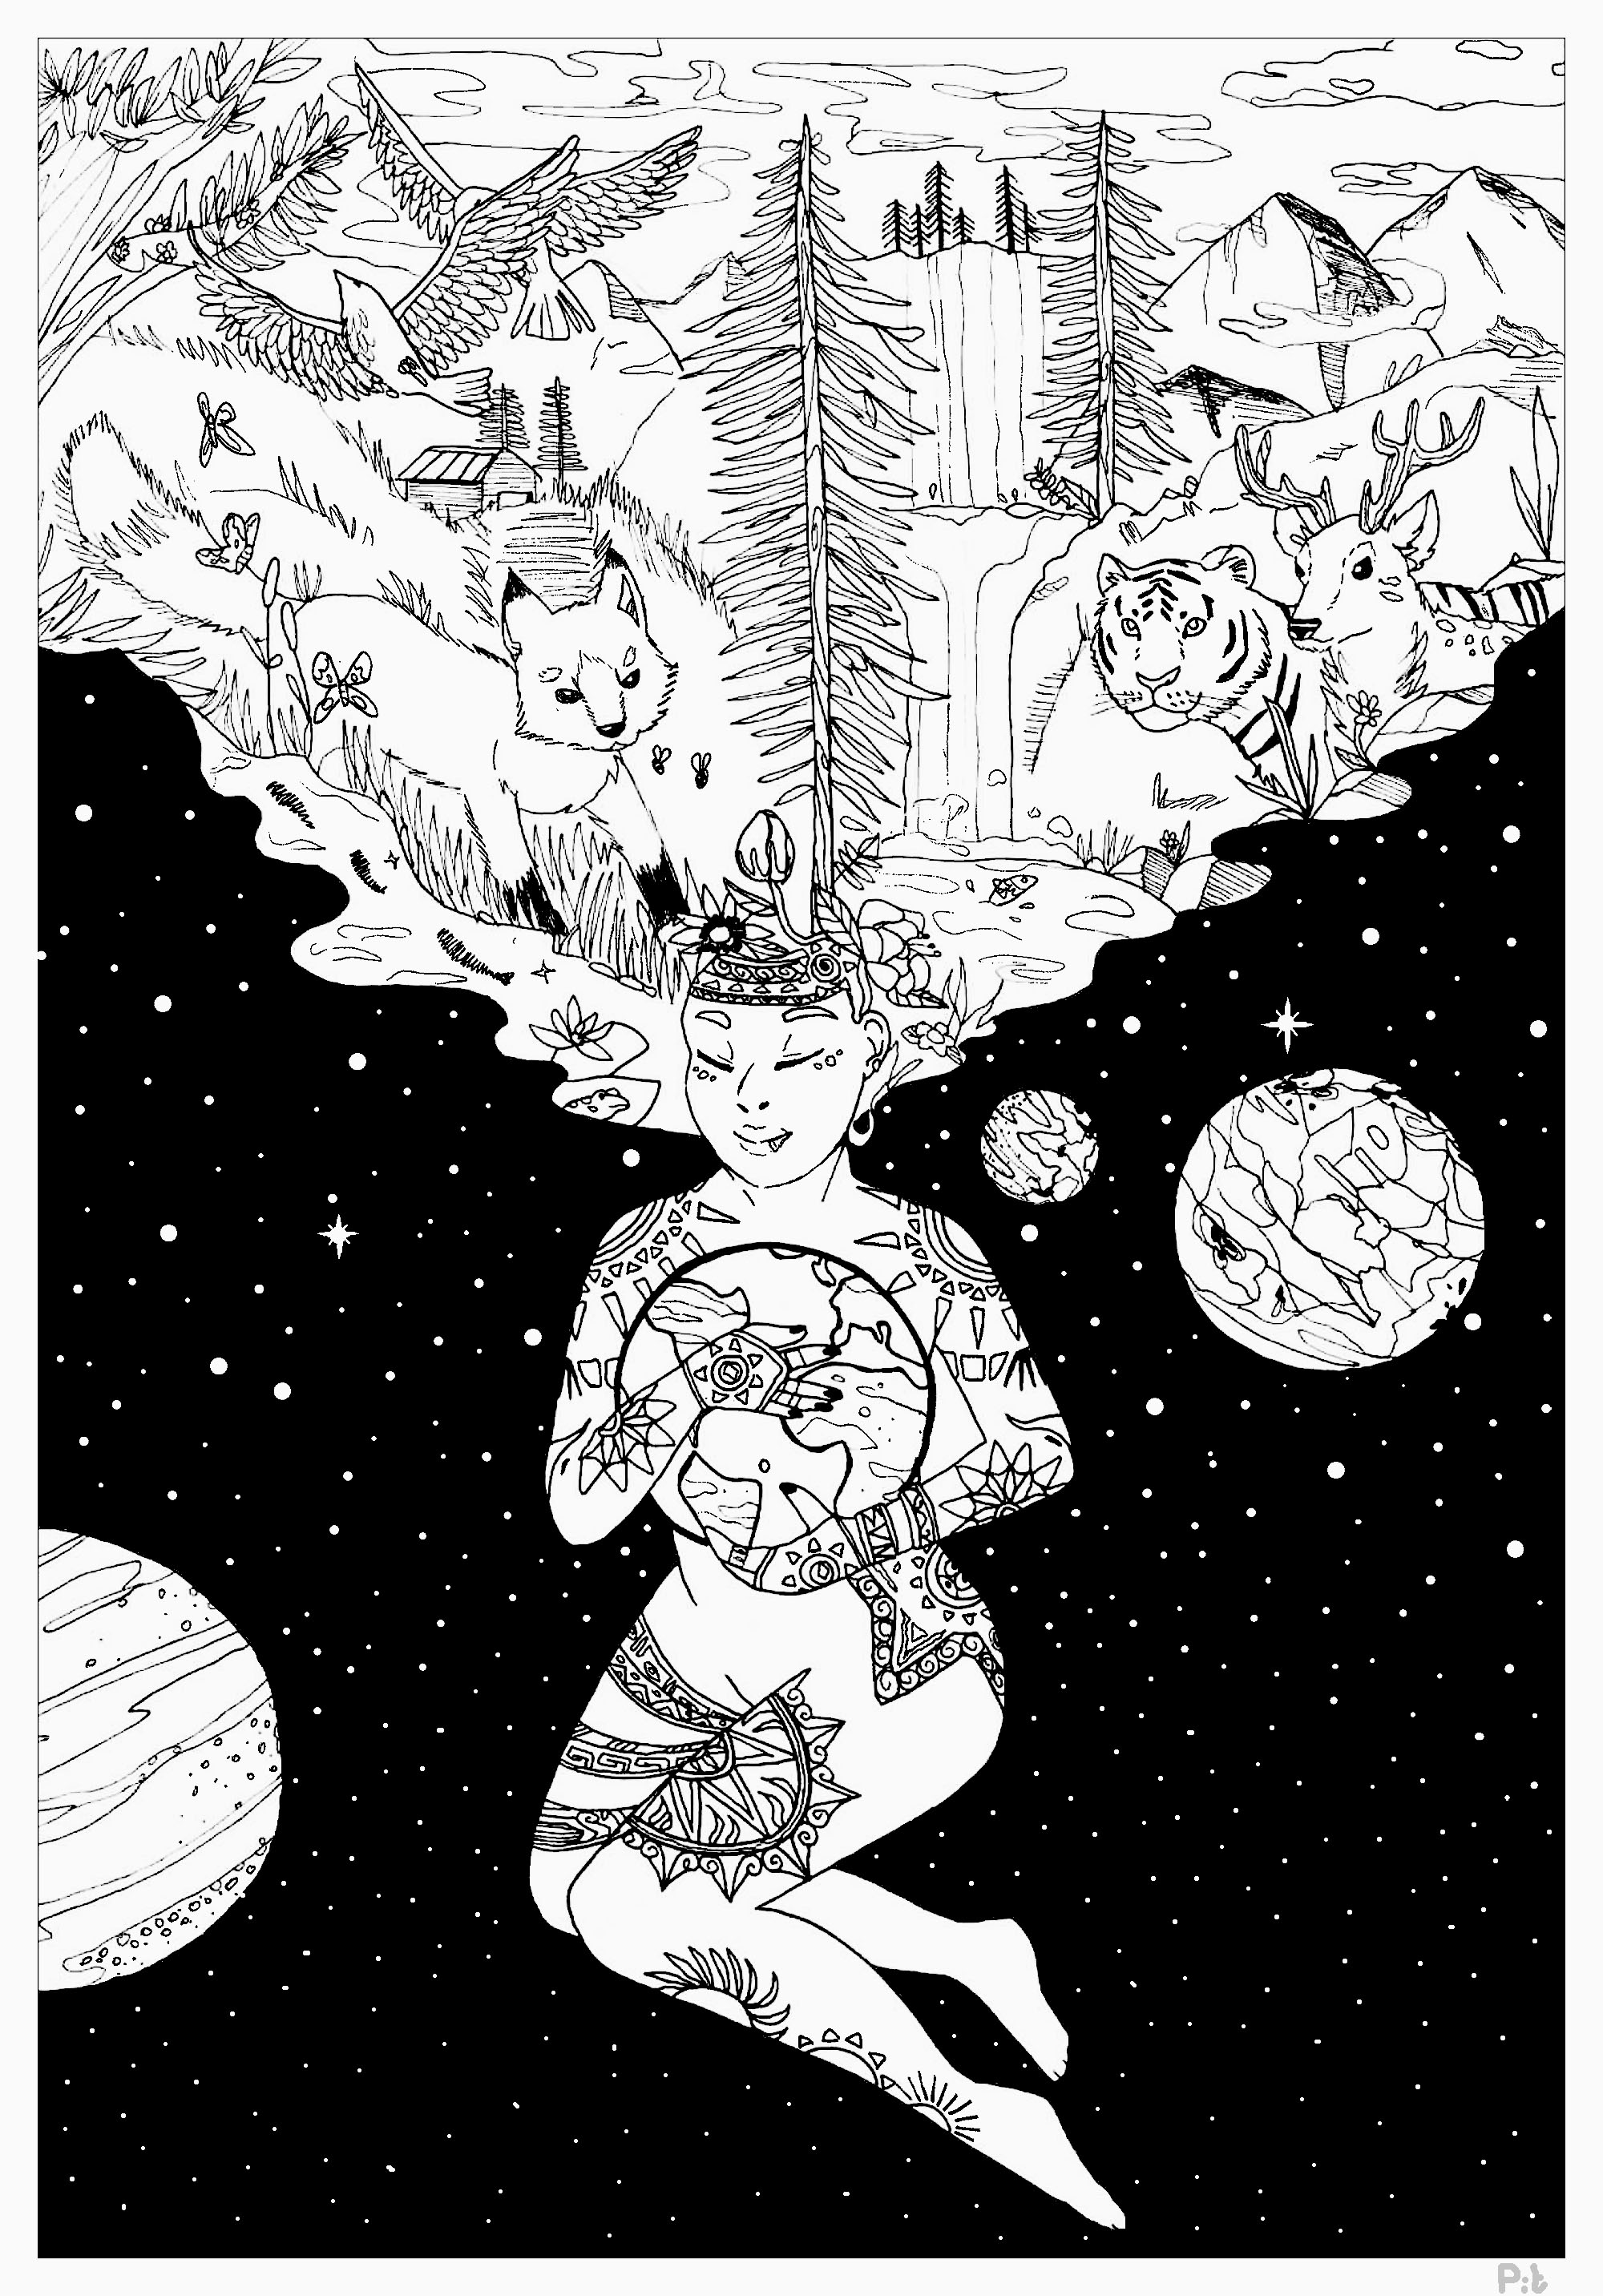 Beautiful coloring page for the Earth Day. The goddess of the sun holds the Earth